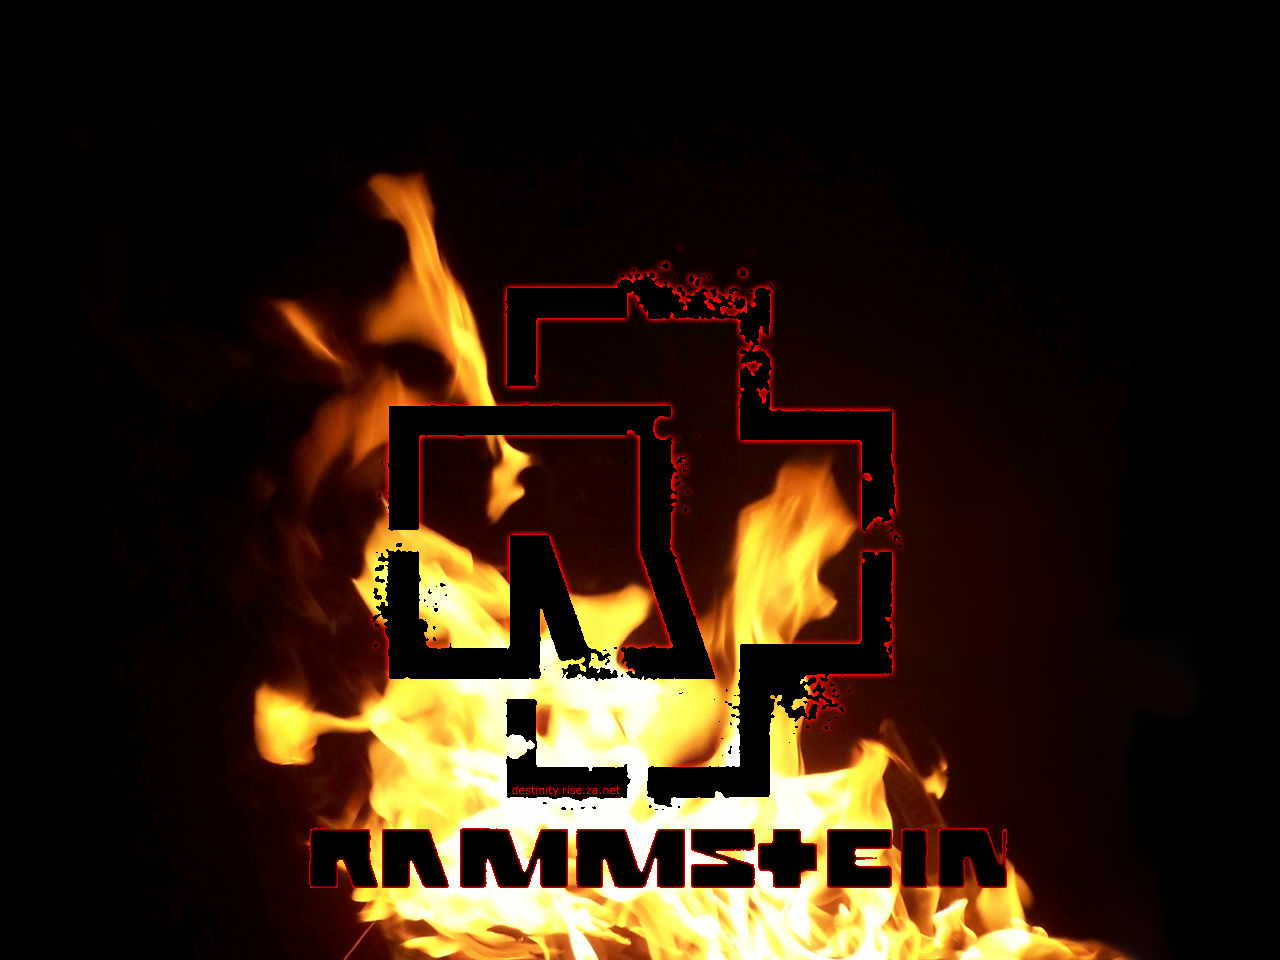 rammstein wallpaper 1 logo fire flames black red dark background art